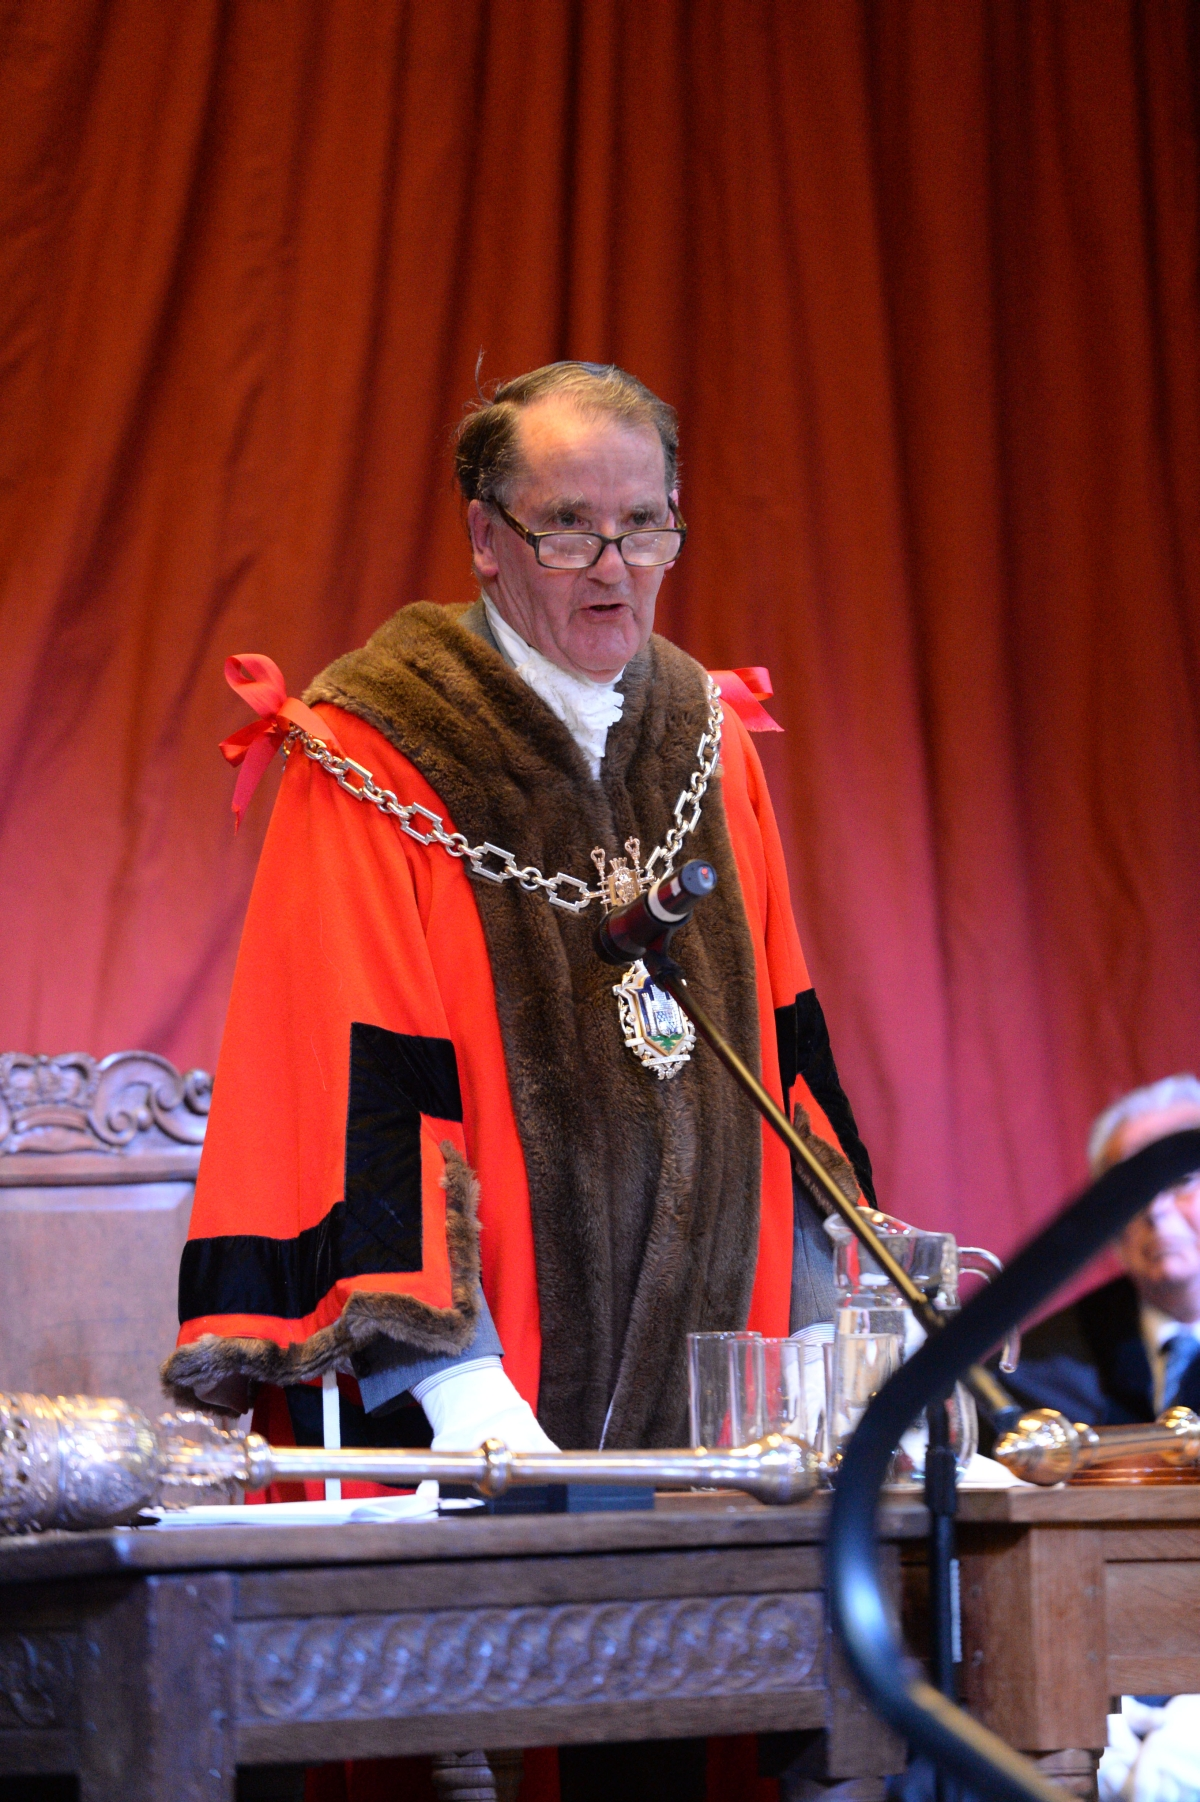 Dorchester welcomes new mayor